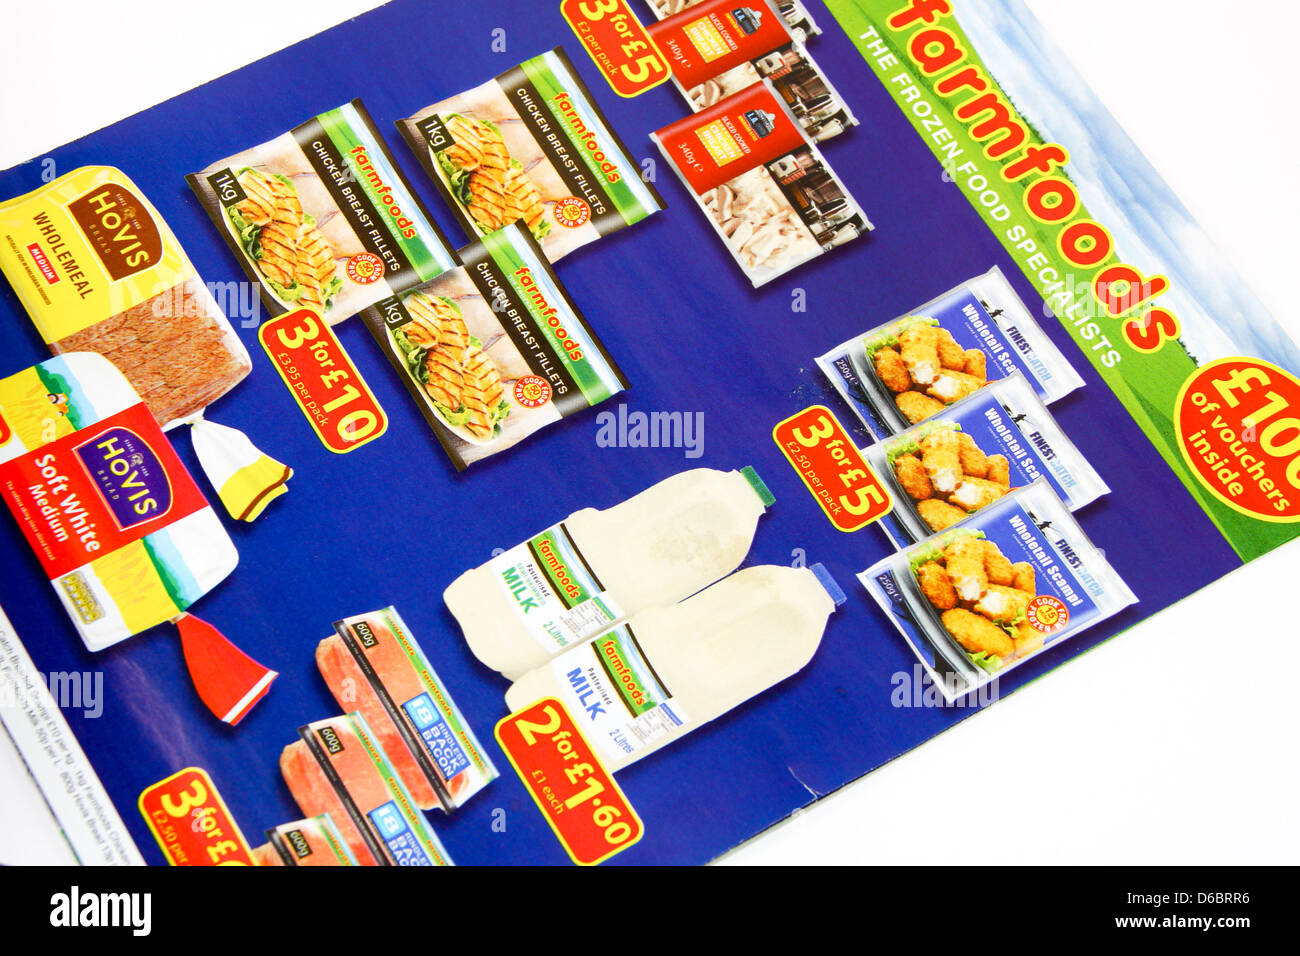 Farmfoods frozen food promotional mailing - Stock Image